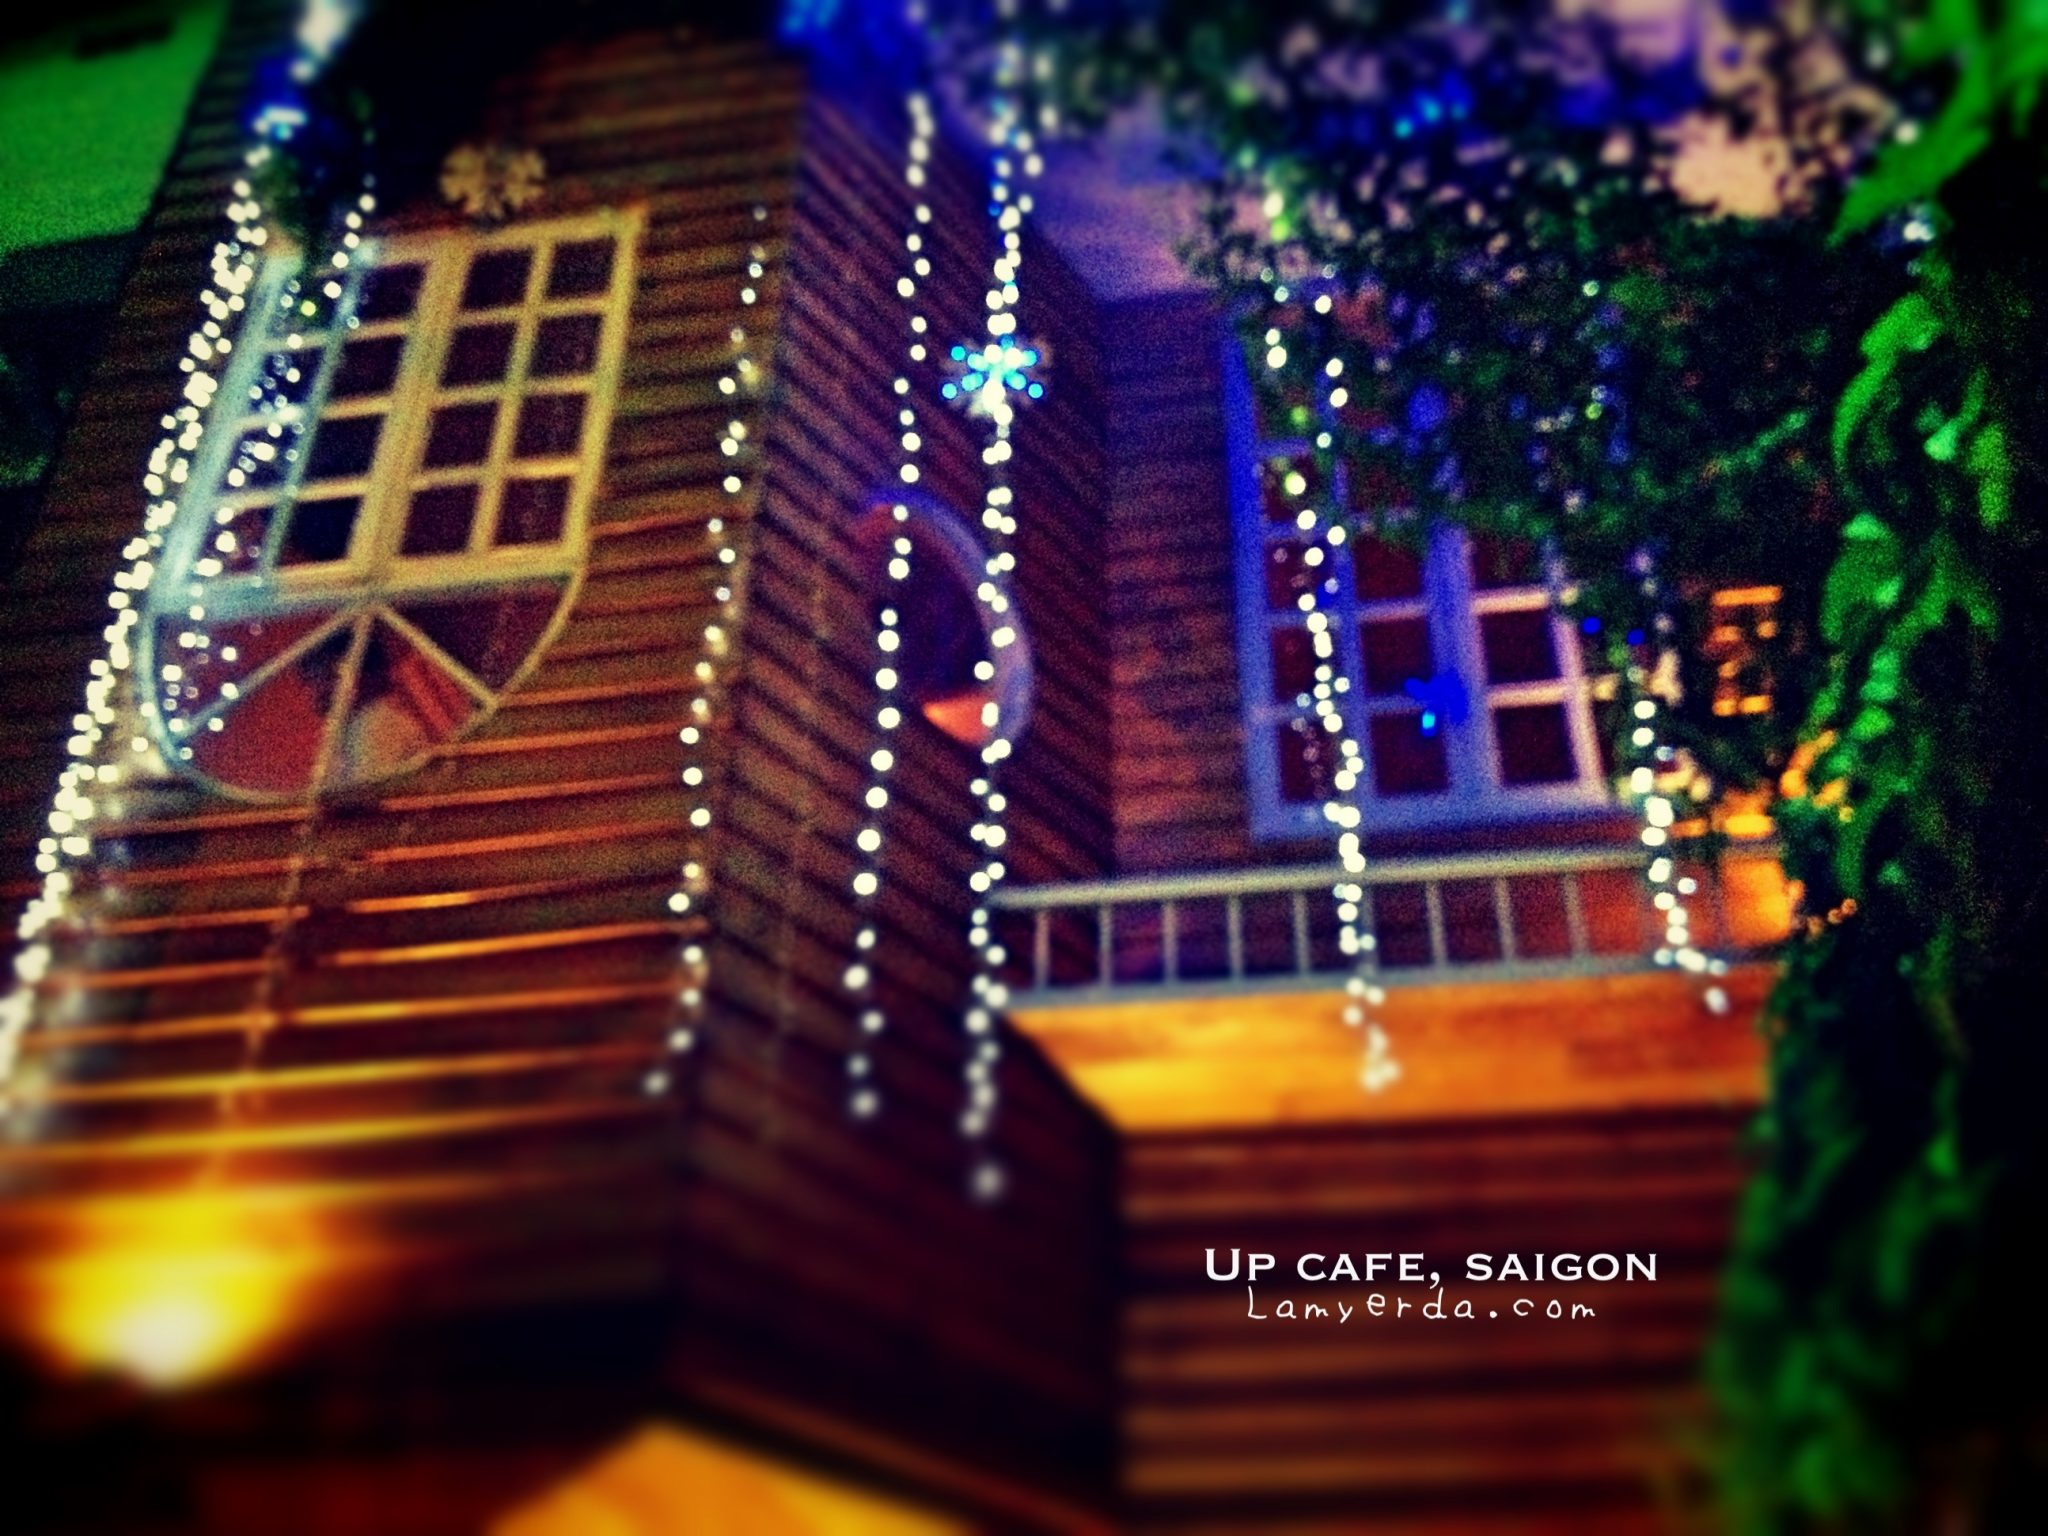 The Up Cafe, Saigon